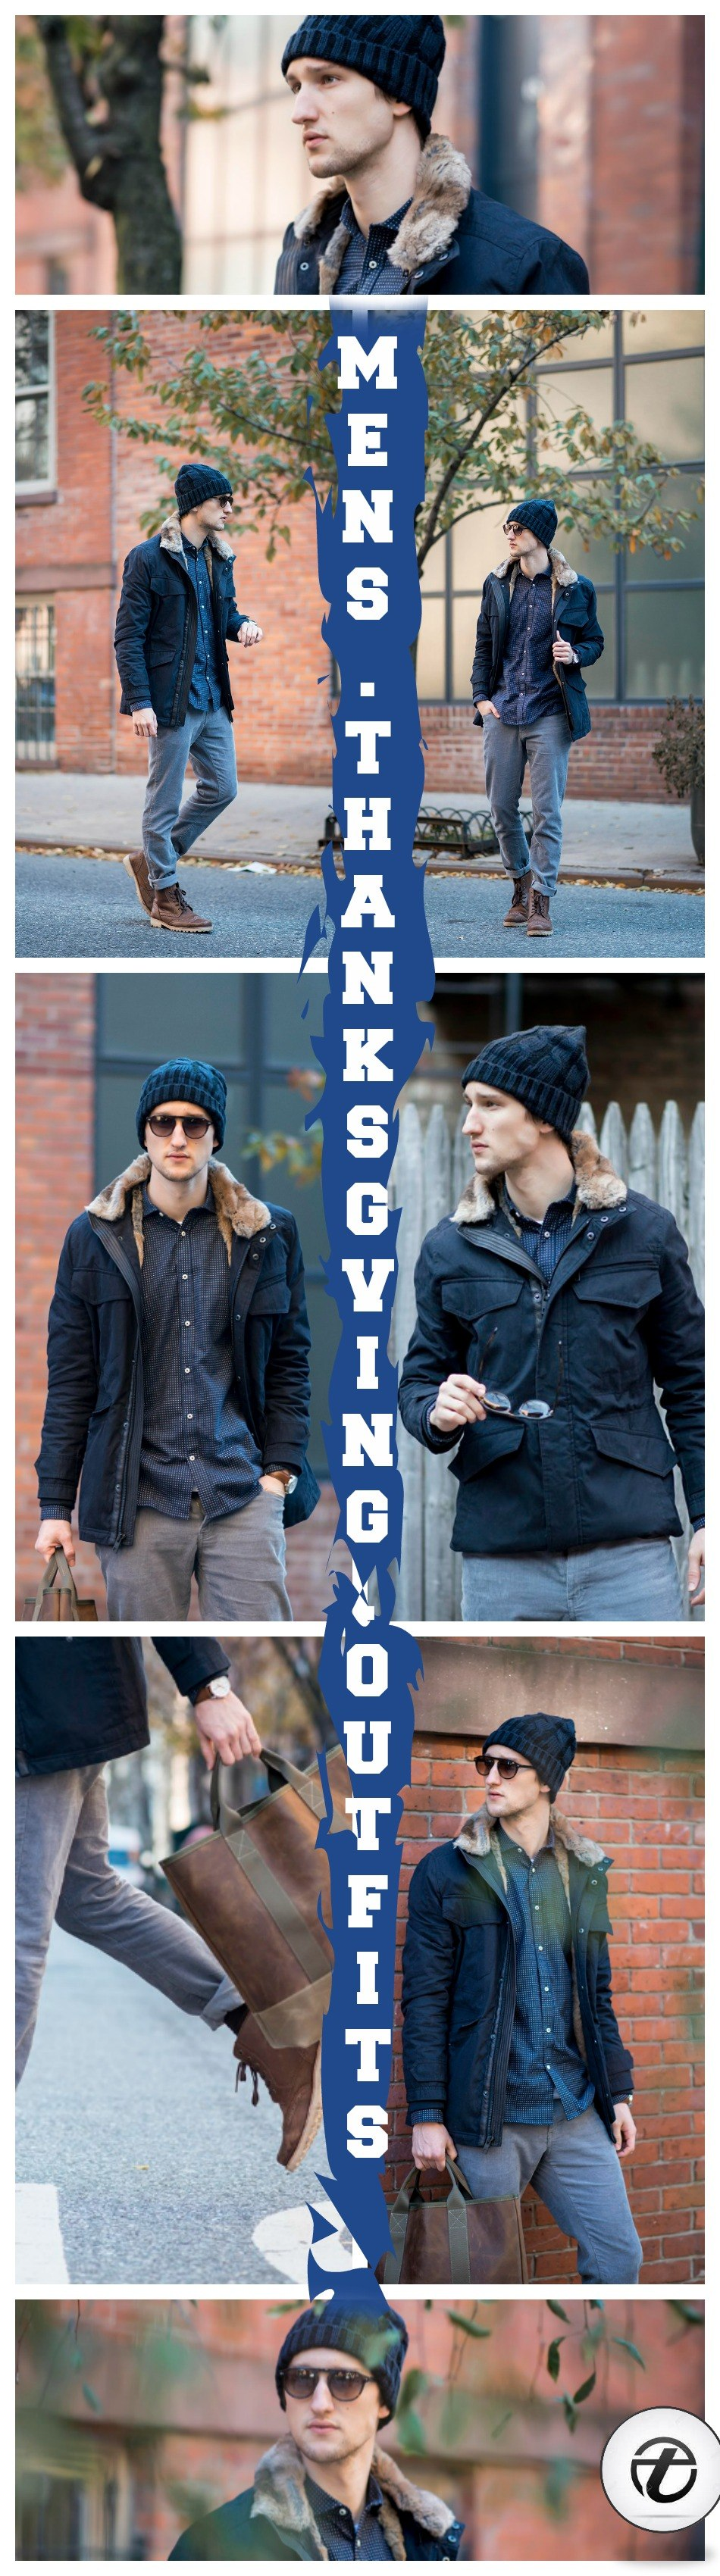 MENS-THANKSGIVING-OUTFITS 2018 Men's Thanksgiving Outfits-30 Ways to Dress on Thanksgiving